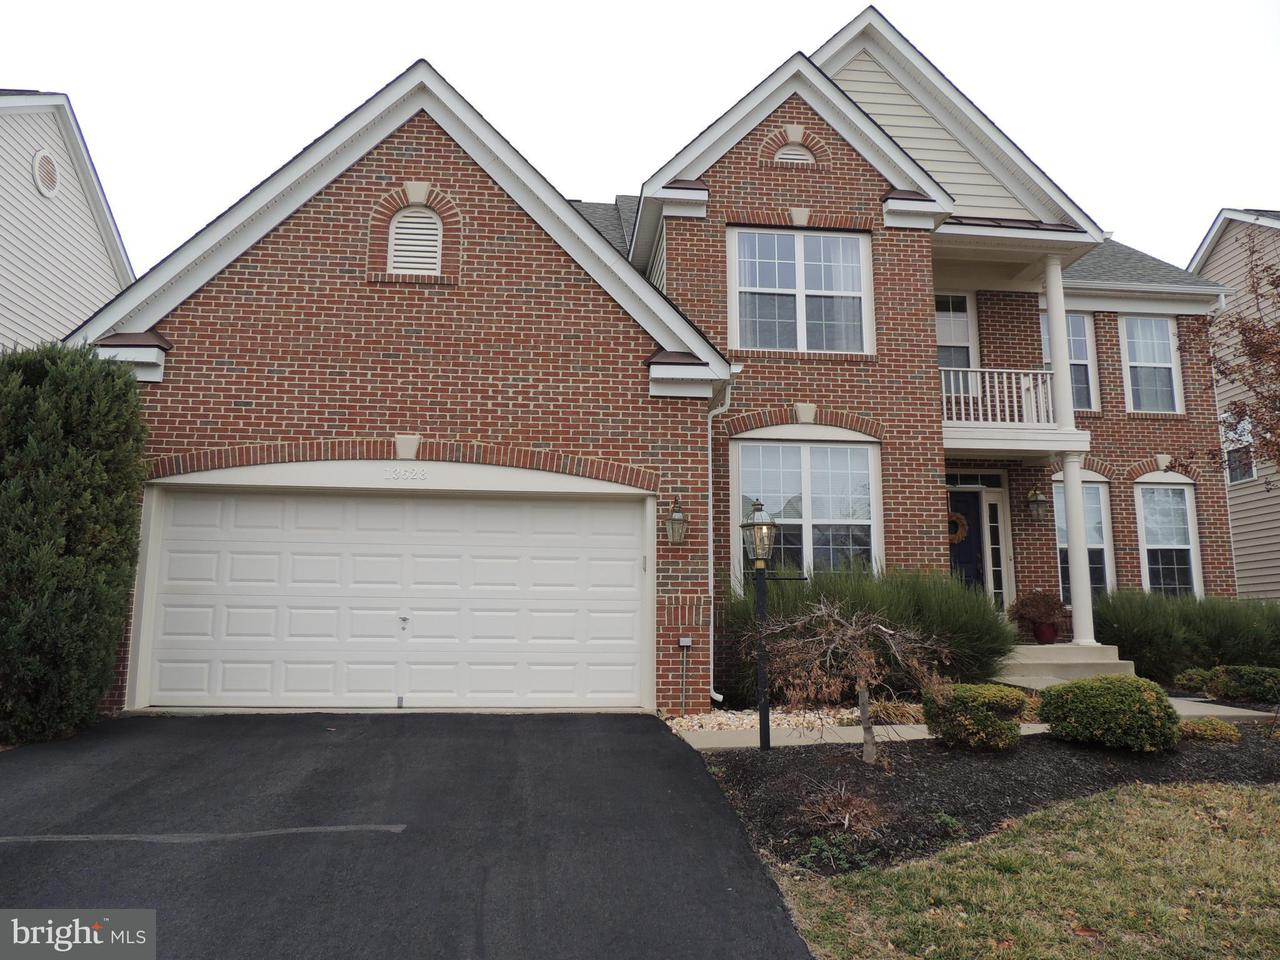 Other Residential for Rent at 13628 Dodsworth Dr Bristow, Virginia 20136 United States